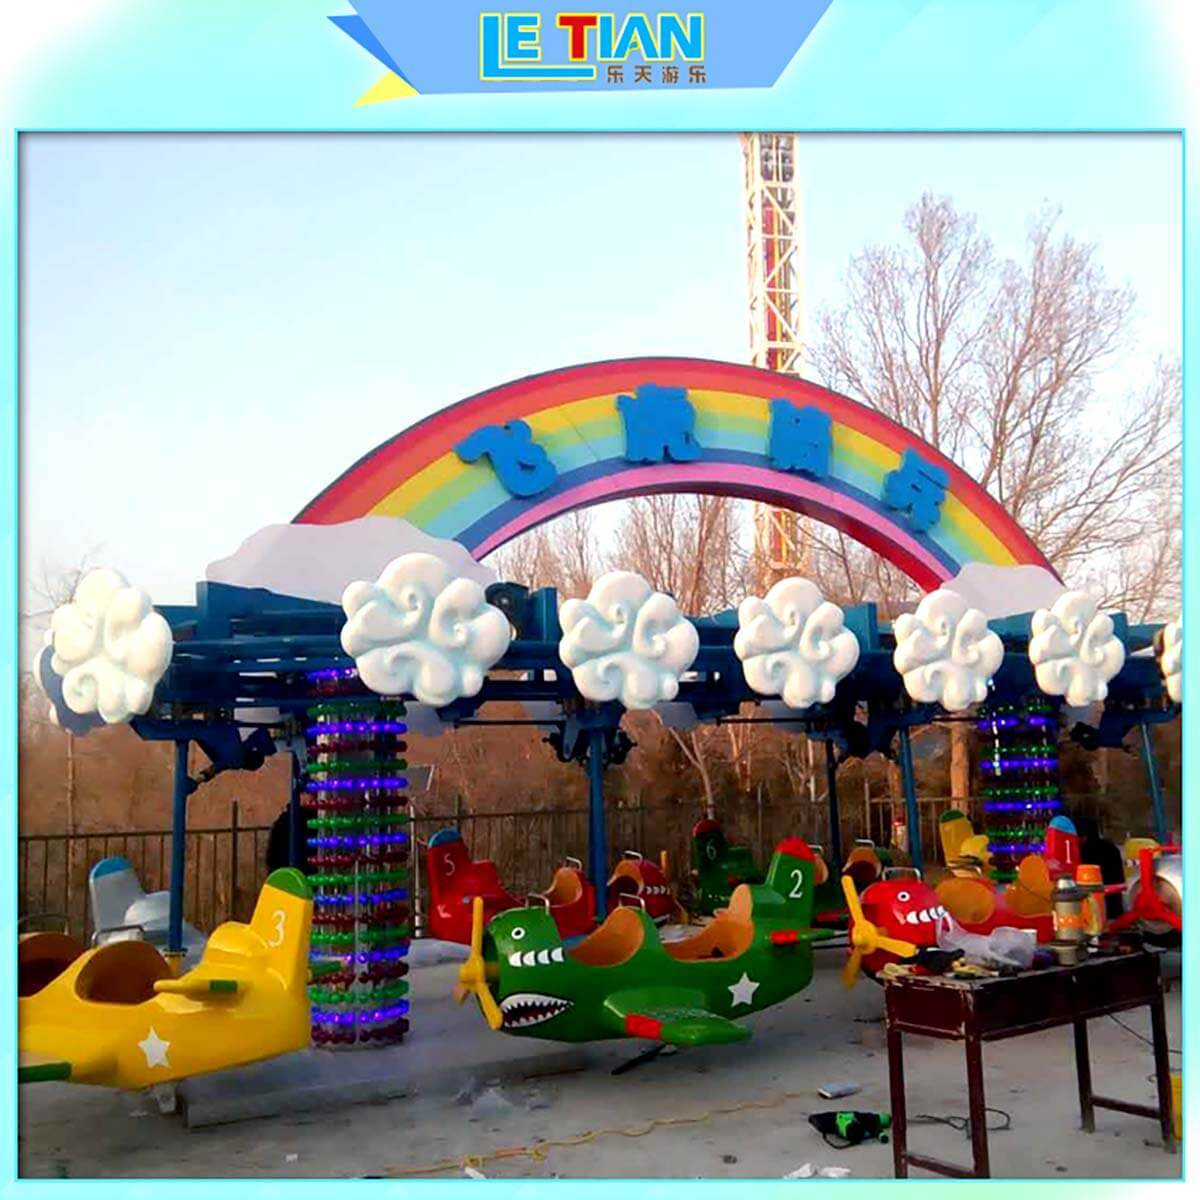 LETIAN outdoor kiddy ride supply mall-3